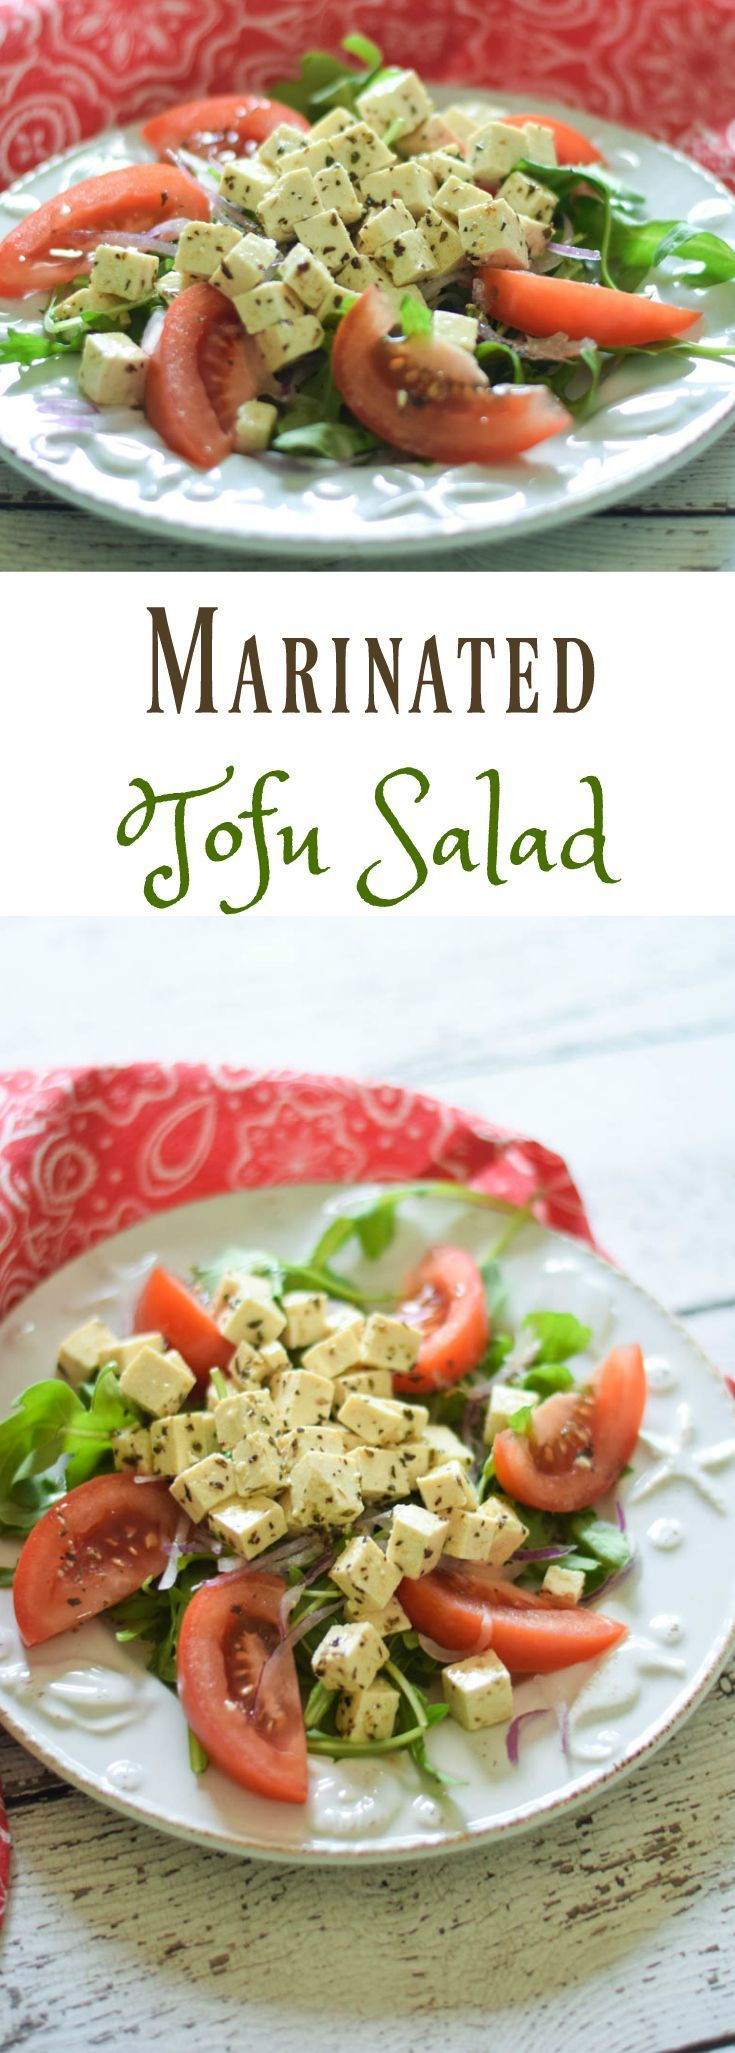 Marinated Tofu Salad is made of small cubes of tofu that have been marinated in a homemade Greek flavored salad dressing. This high protein vegan salad is so full of flavor that you may have trouble convincing some that it is actually tofu they are eating